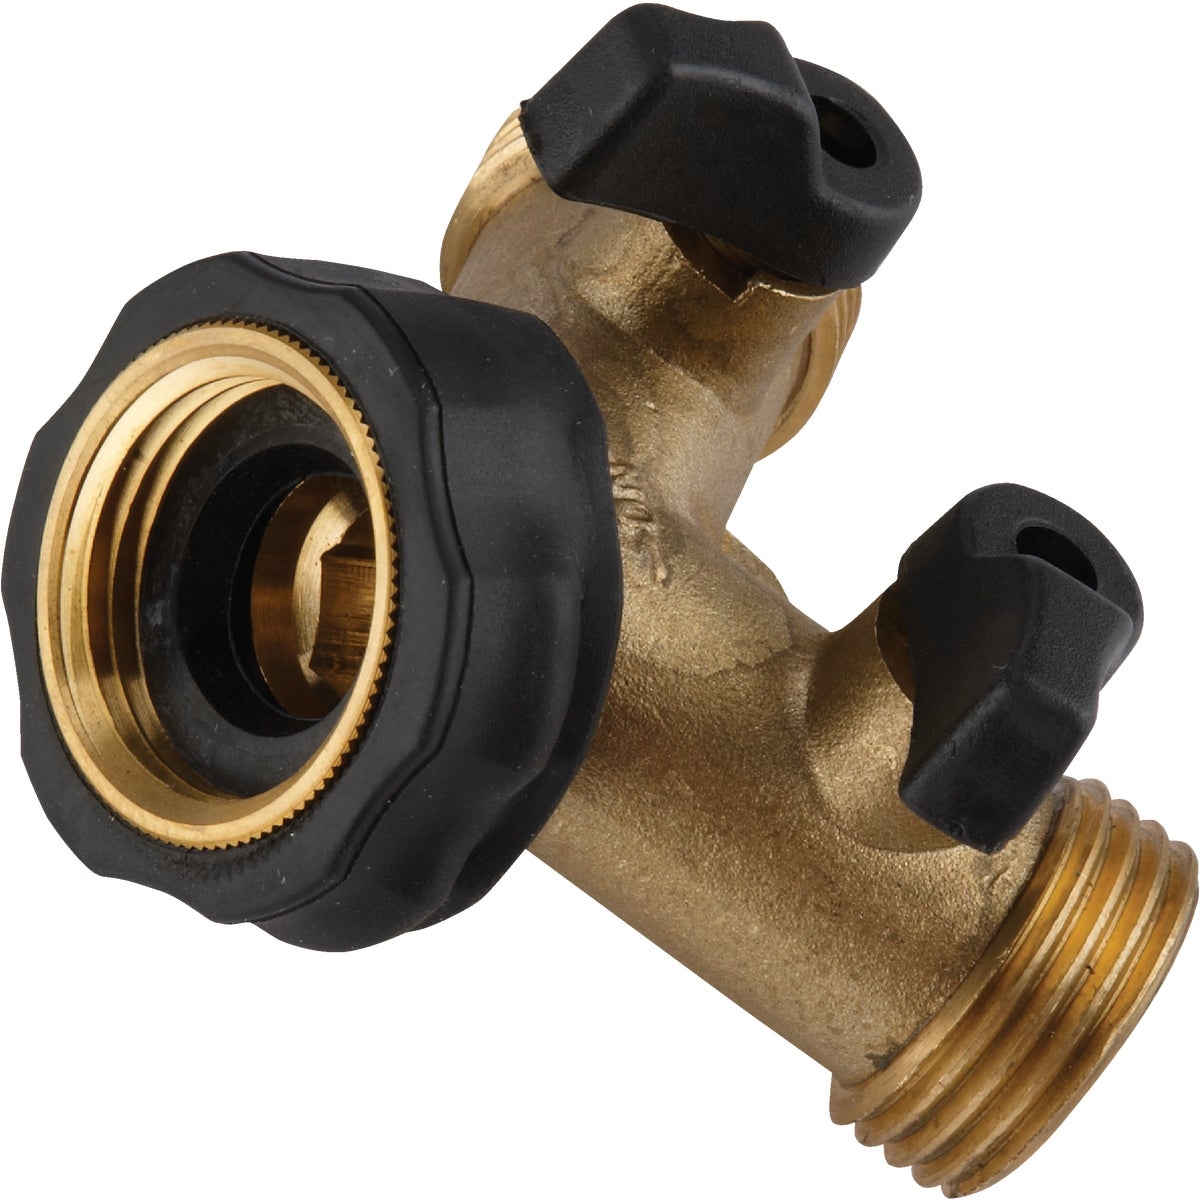 BRASS SHUT OFF Y-VALVE - 20123 by Camco Mfg.